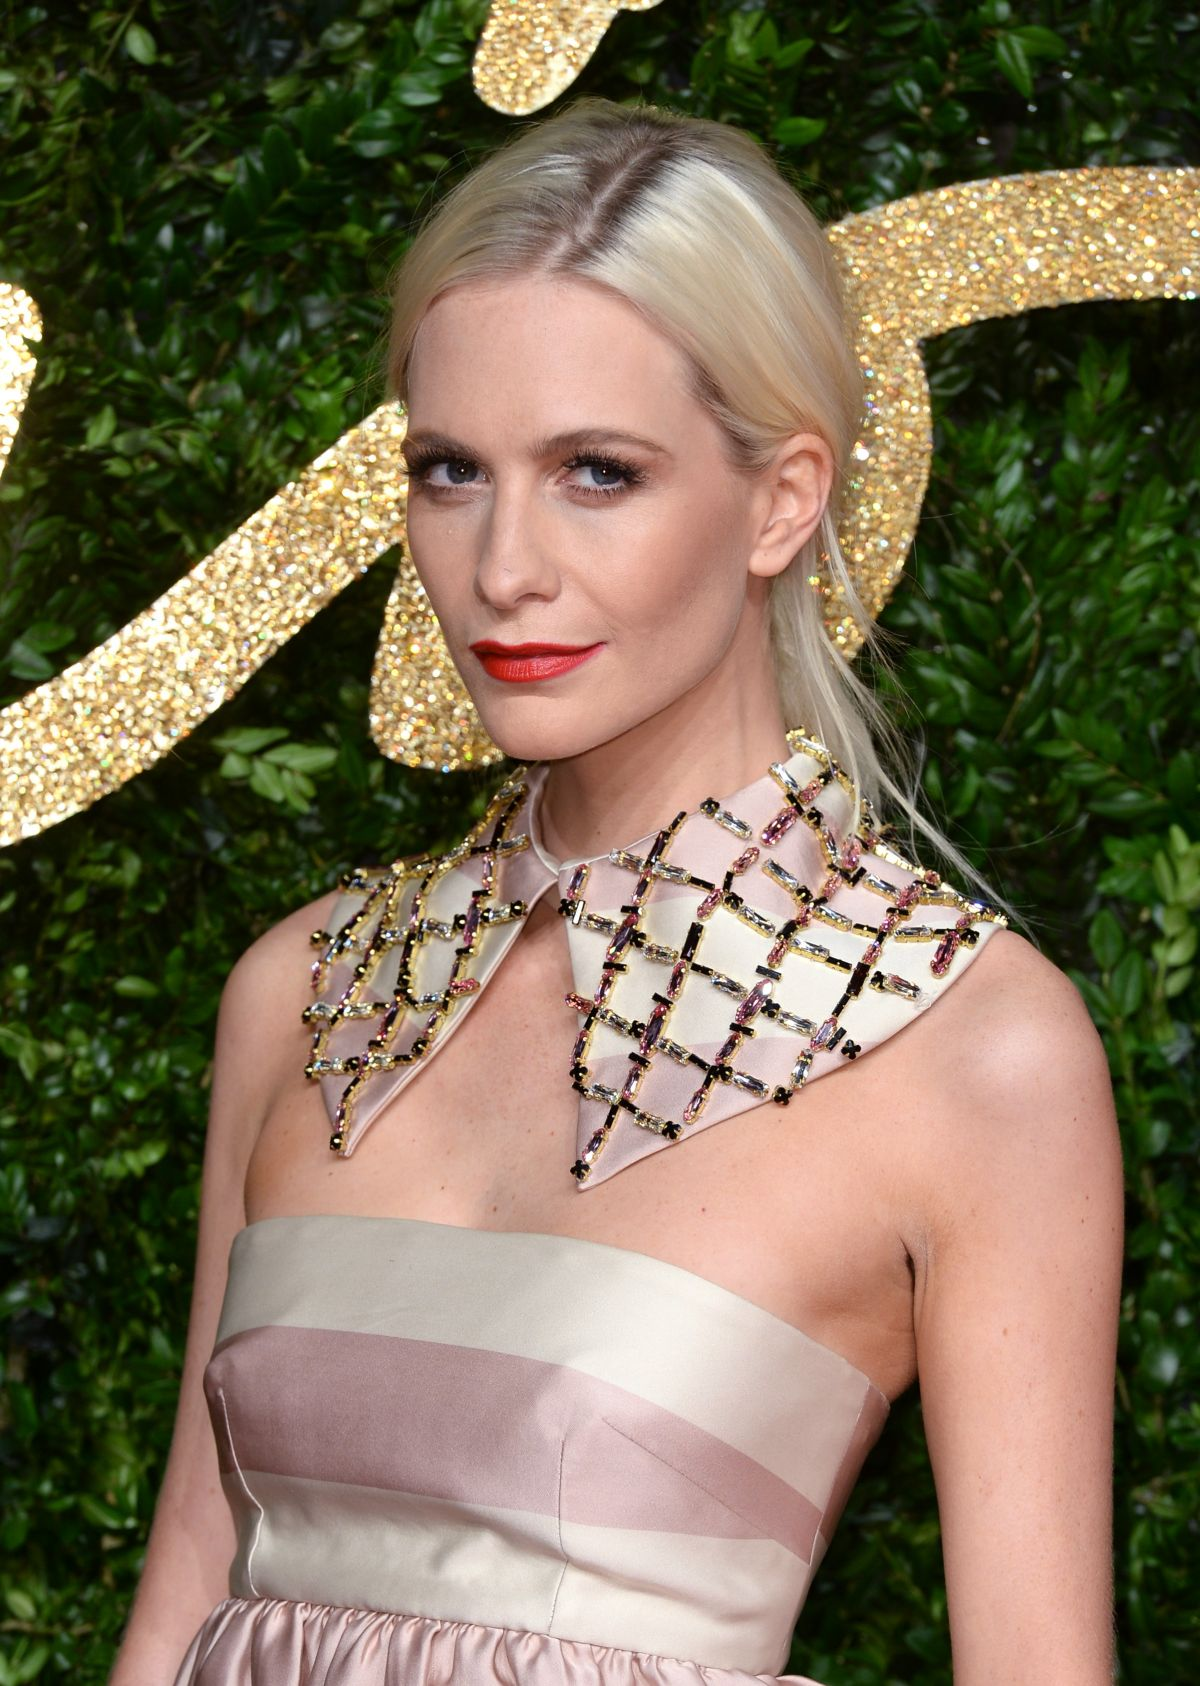 POPPY DELEVINGNE at 2015 British Fashion Awards in London 11/23/2015